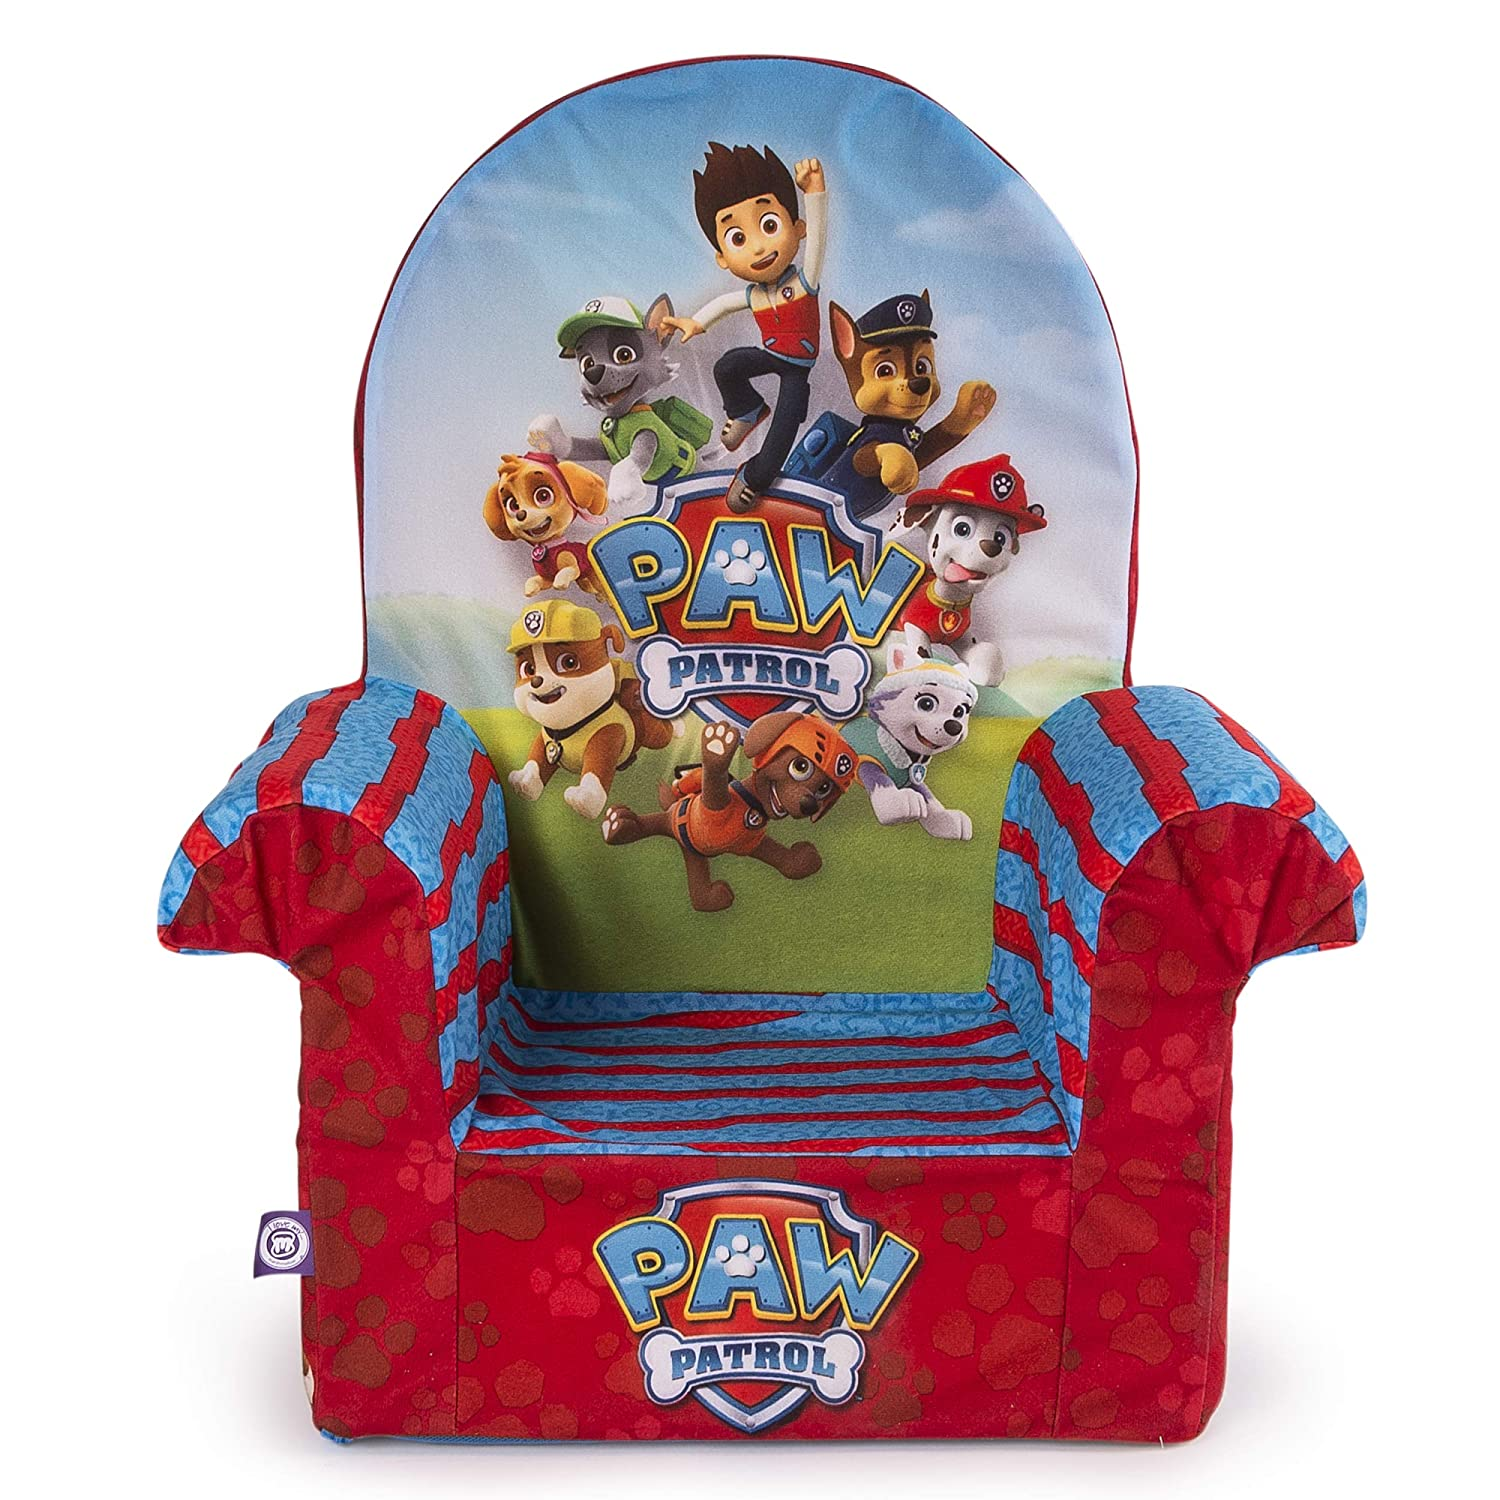 Marshmallow Furniture 20070551 Children's Foam High Back Chair, Nickelodeon Paw Patrol, by Spin Master